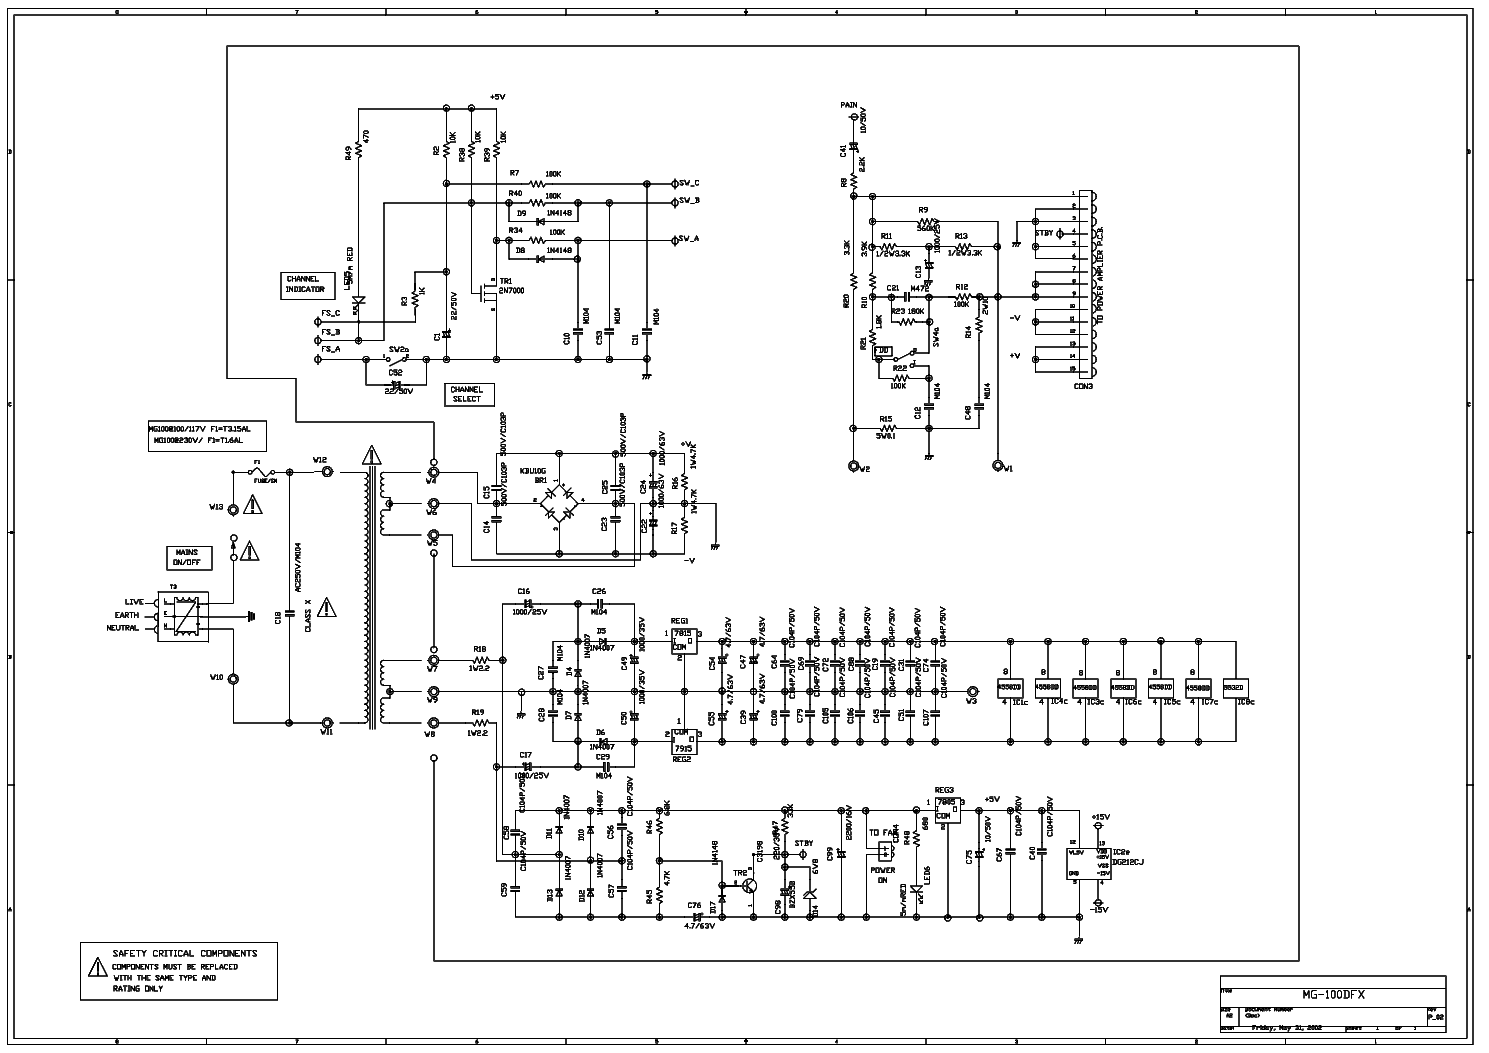 5bfaq 5d Ecu Codes Everyone 682412 furthermore Kt 100 Wiring Diagram together with Knock Sensor Location For 2004 Chevy Aveo as well 1999 F250 Superduty Fuse Box Diagram also Excavator Schematic Diagram. on acura wiring diagram a c